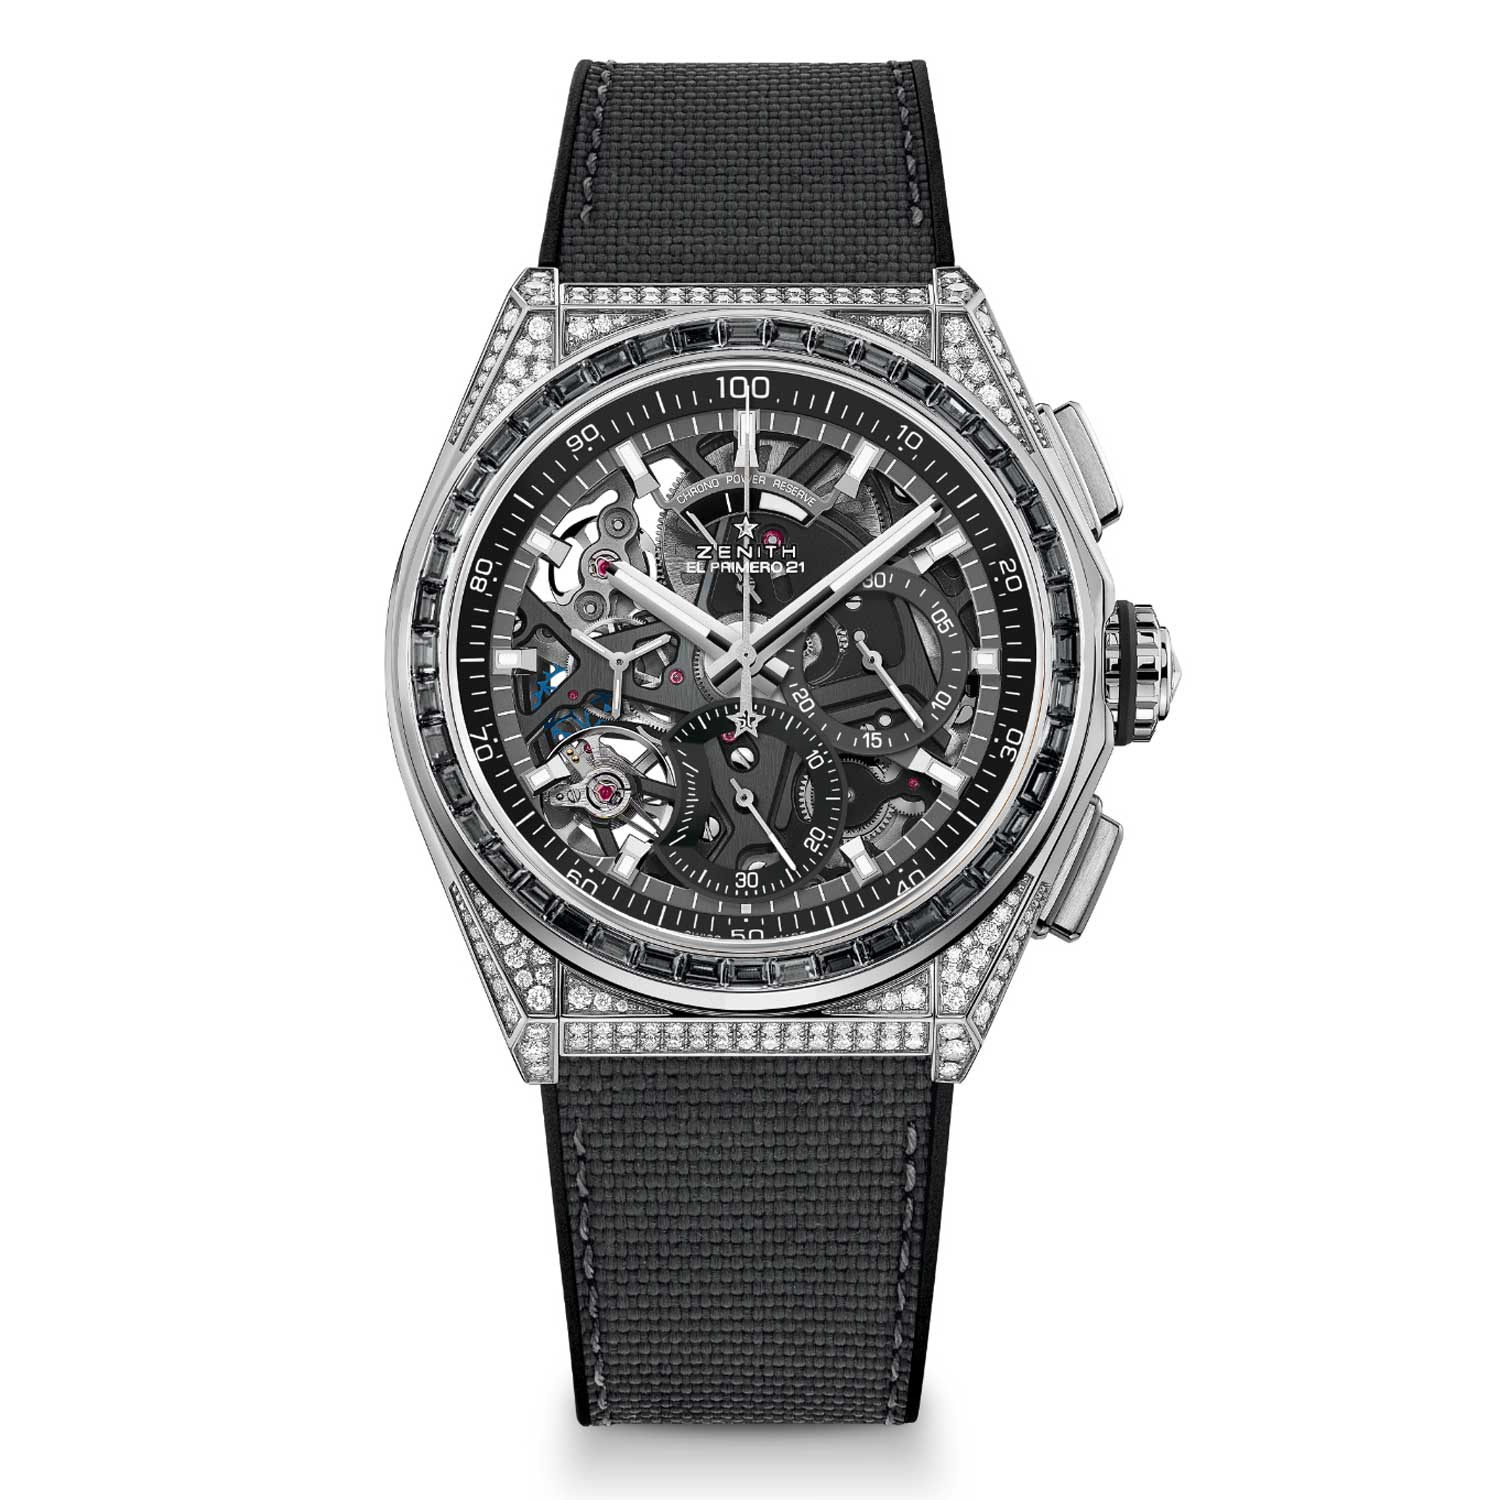 Zenith DEFY 21 Spectrum Limited Editions